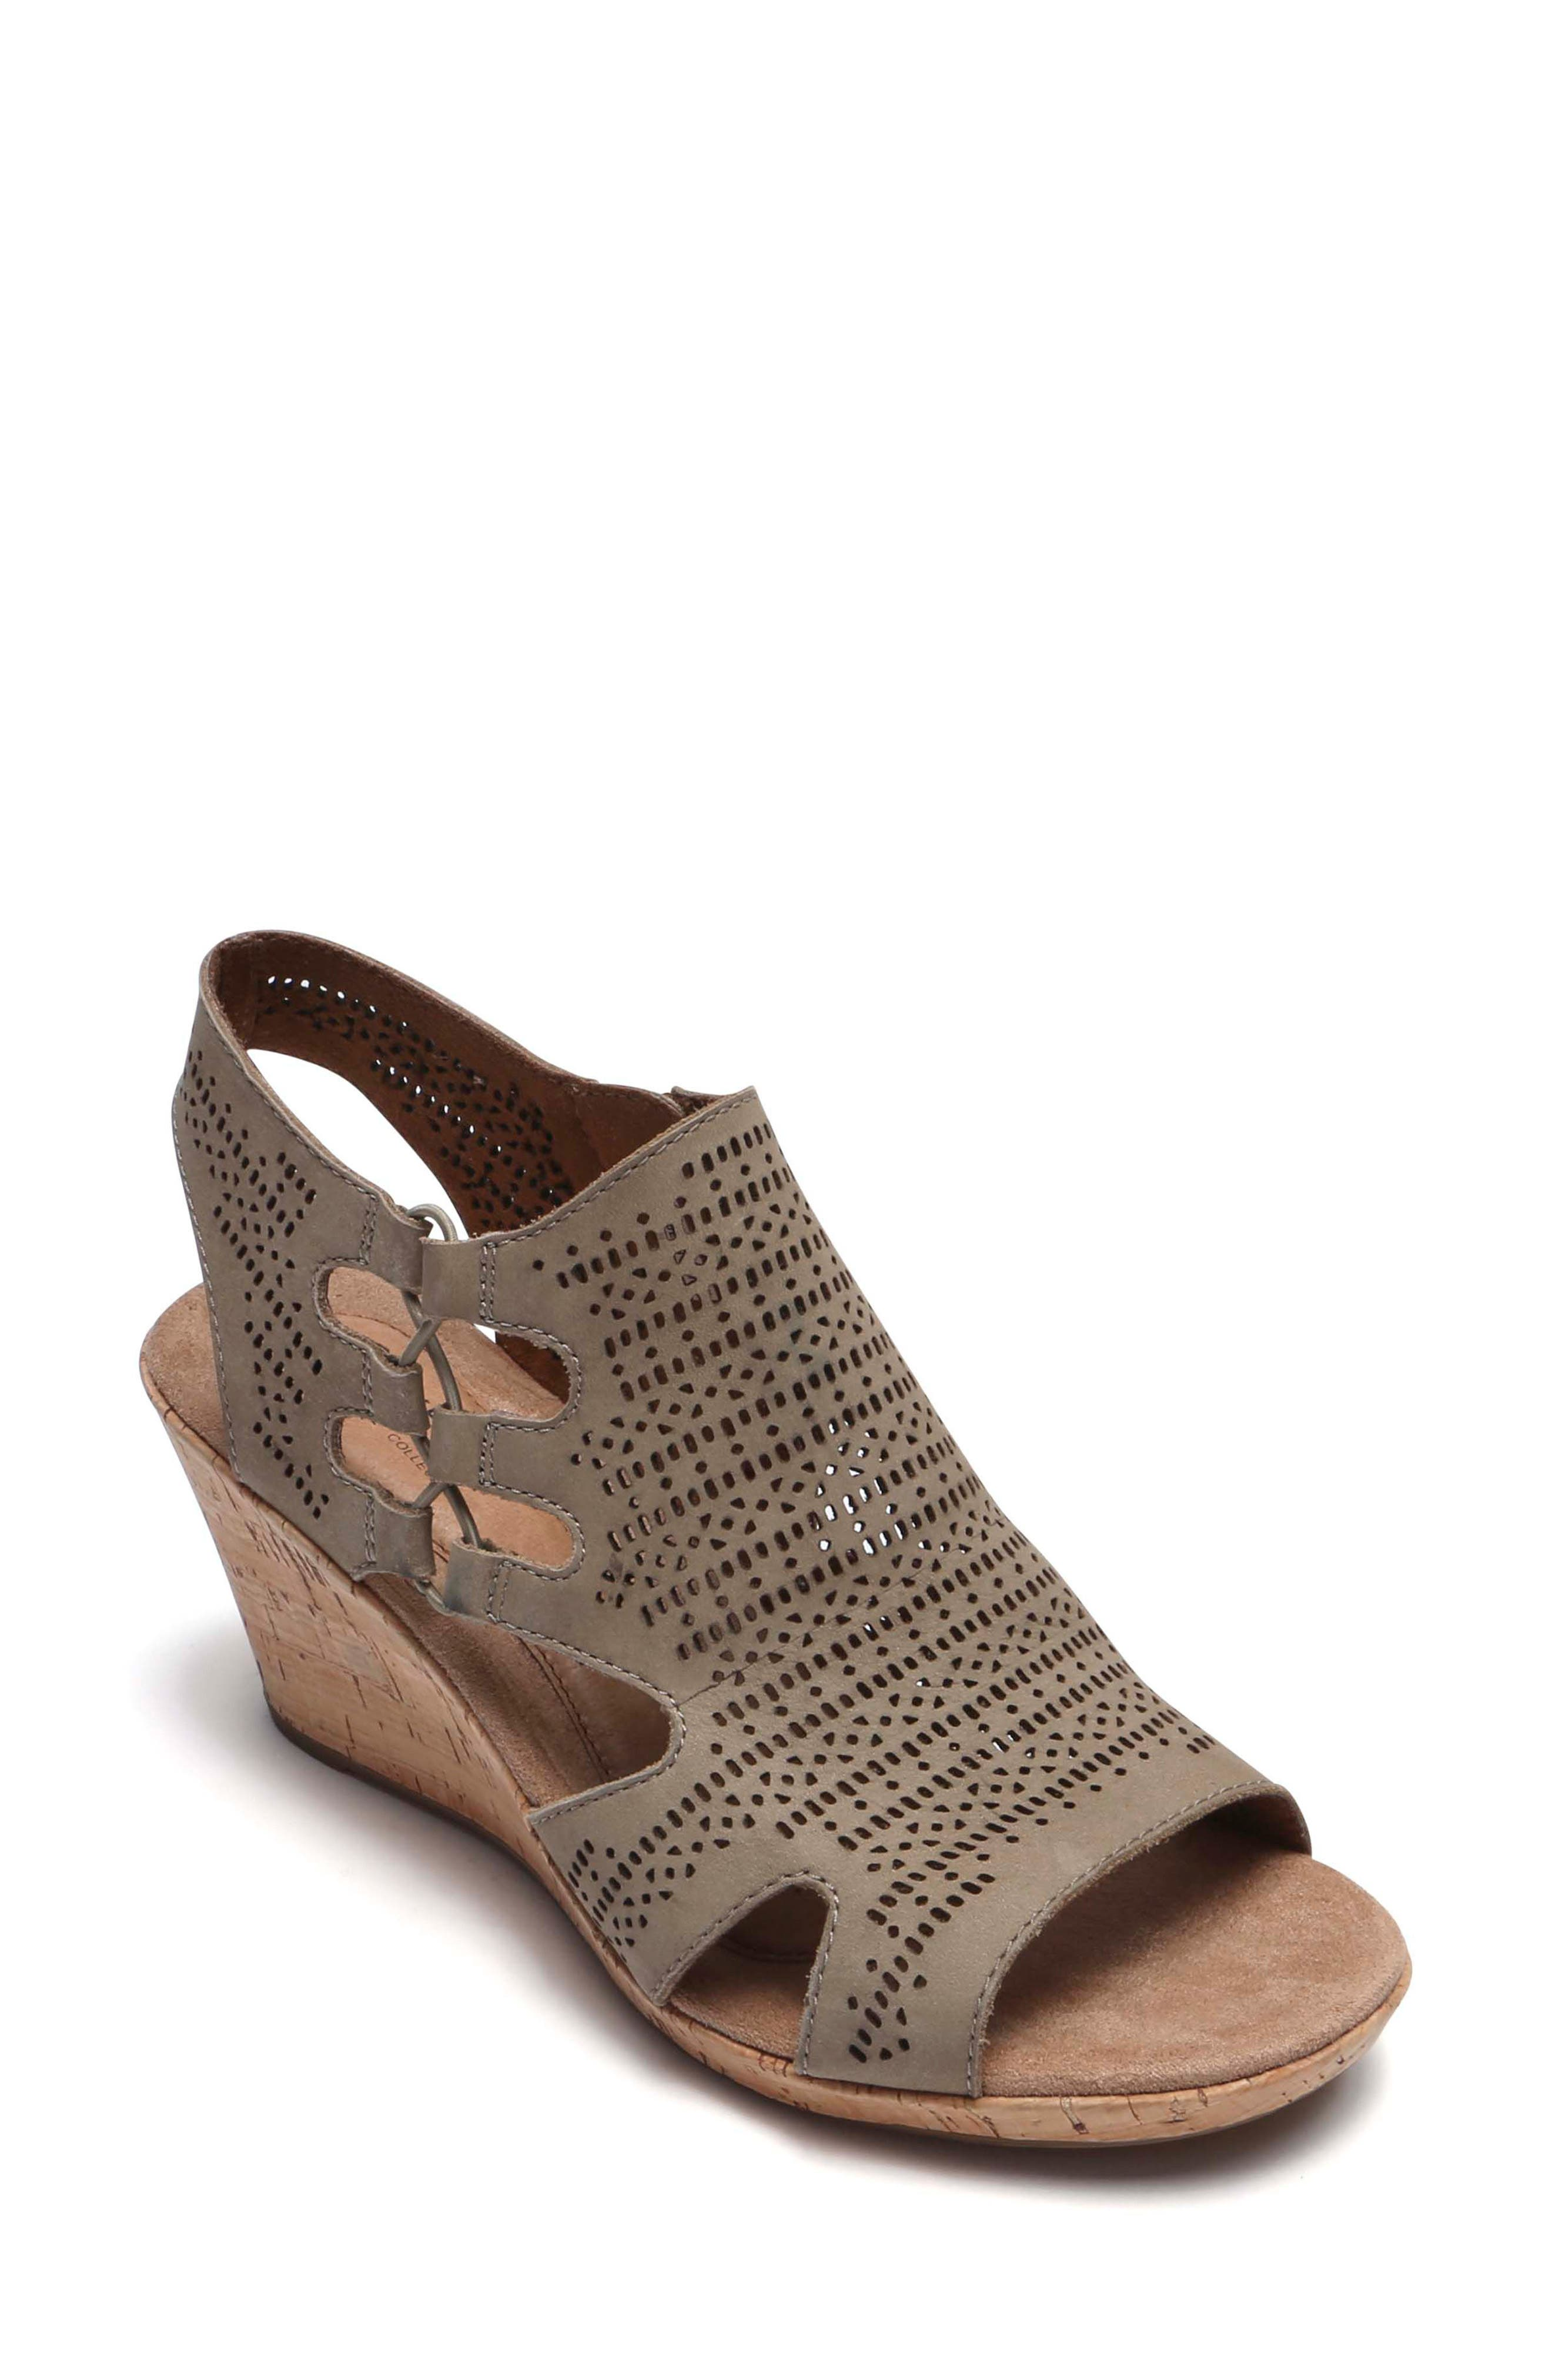 Rockport Cobb Hill Janna Perforated Wedge Sandal (Women)